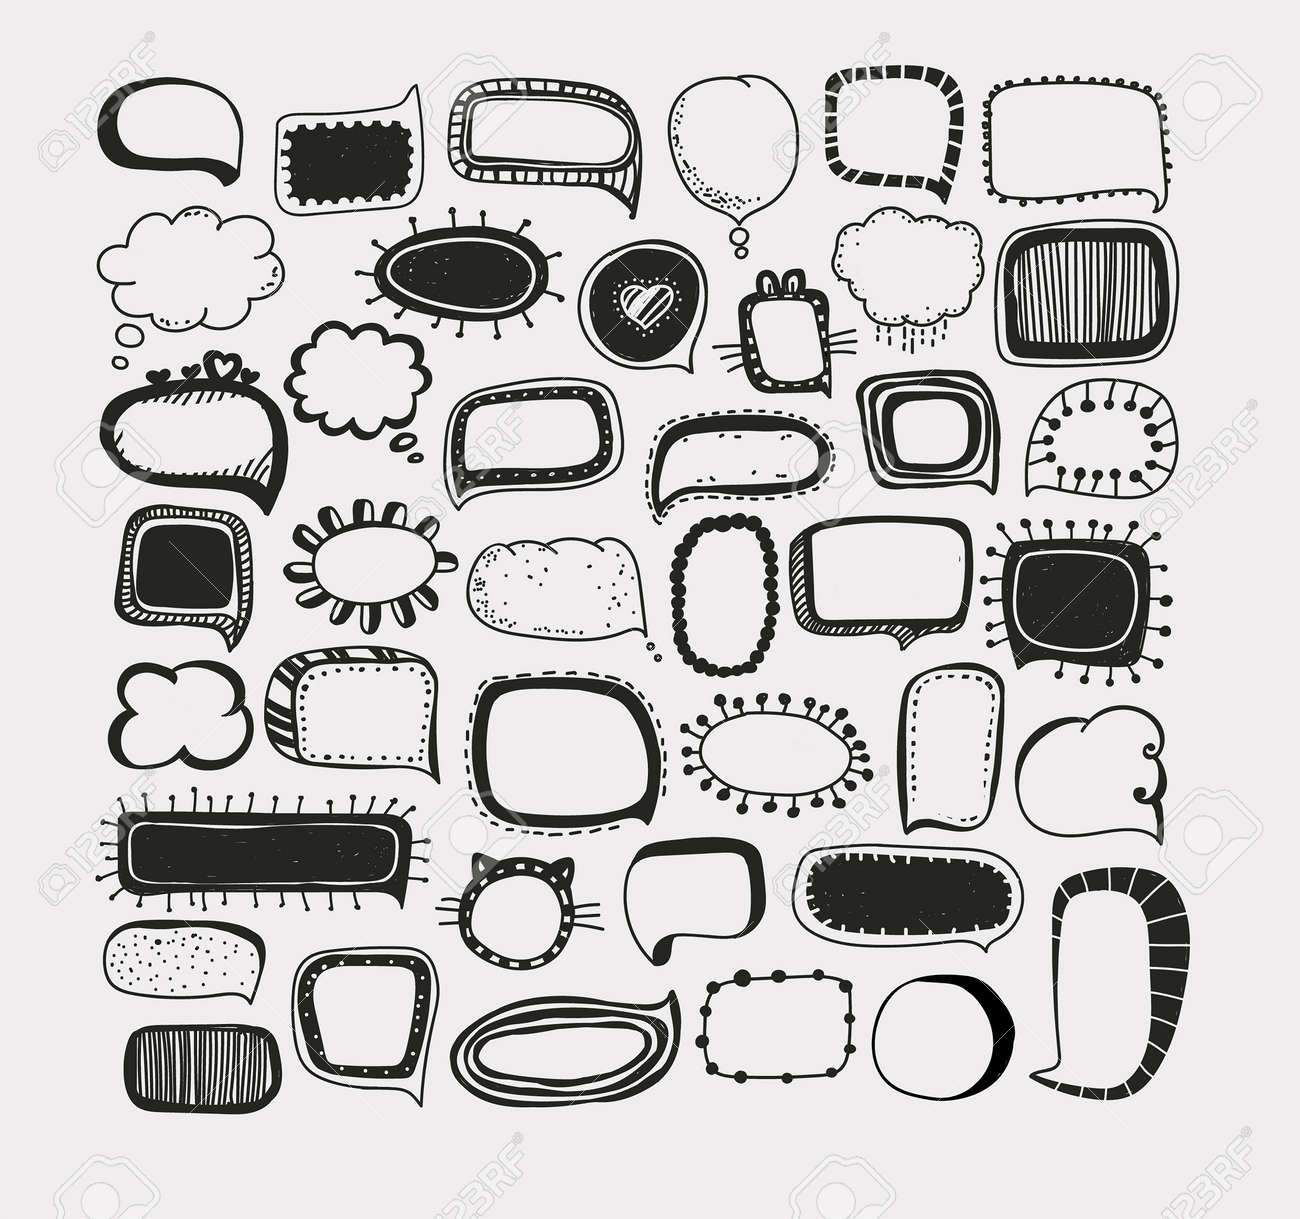 set of speech bubbles different forms of clouds hand drawing